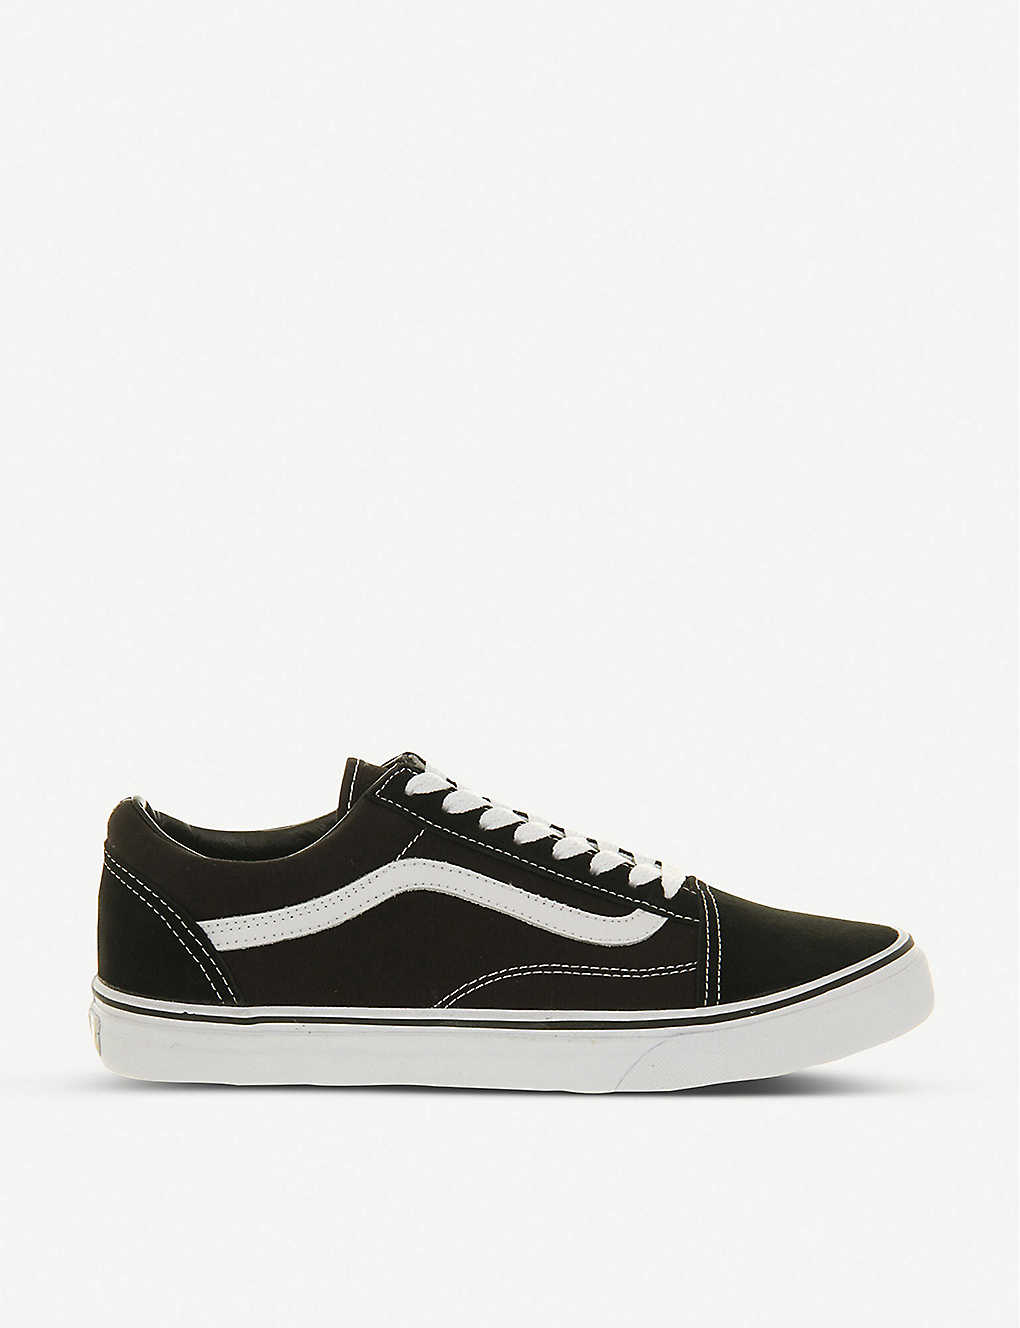 f21491db87cb8 VANS - Old skool trainers | Selfridges.com